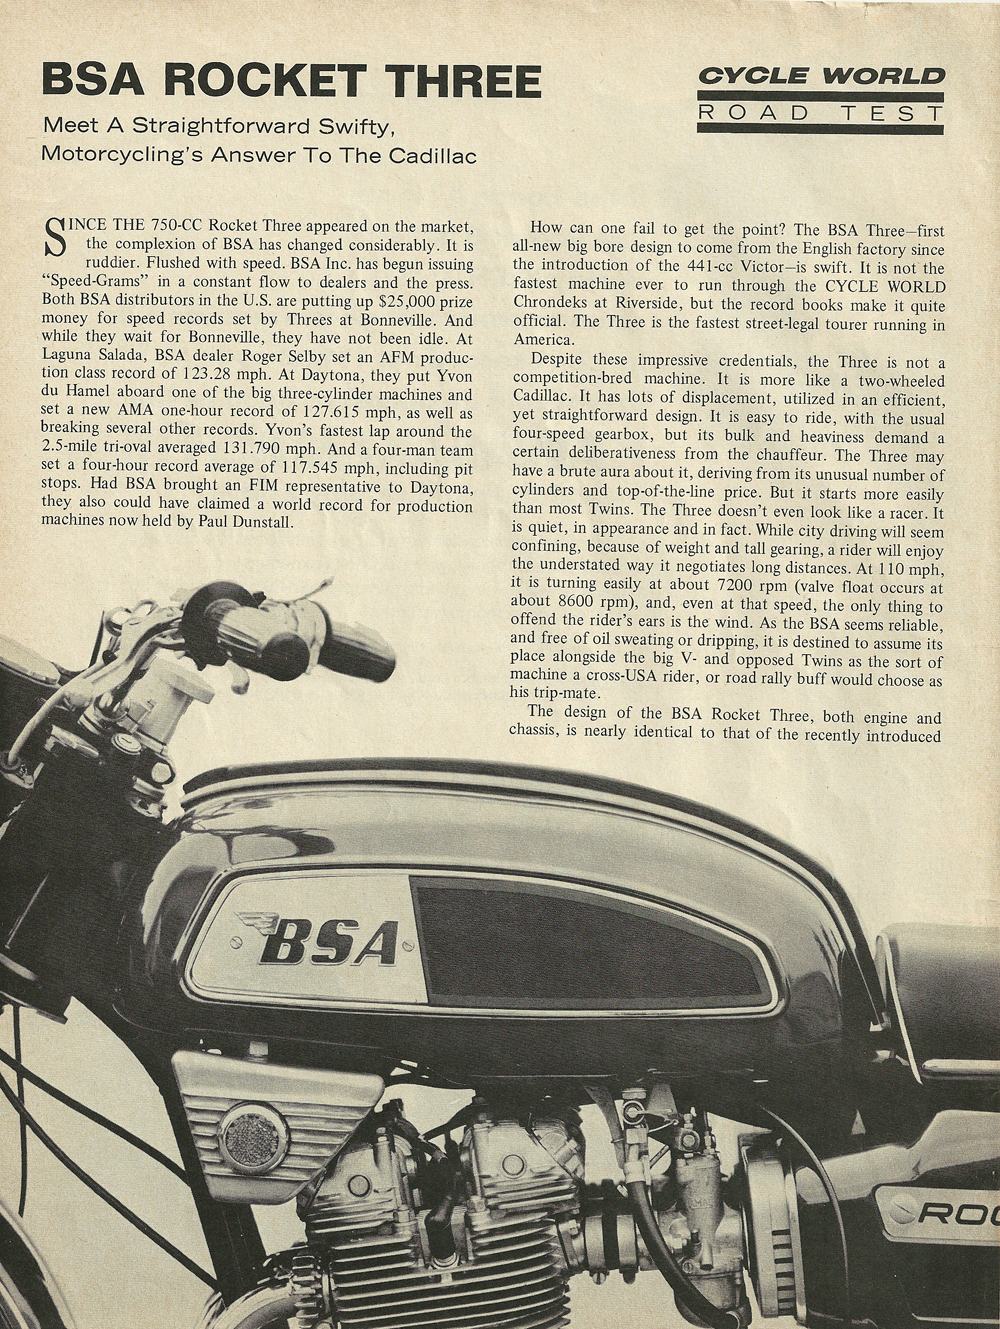 1969 BSA Rocket 3 road test 1.jpg